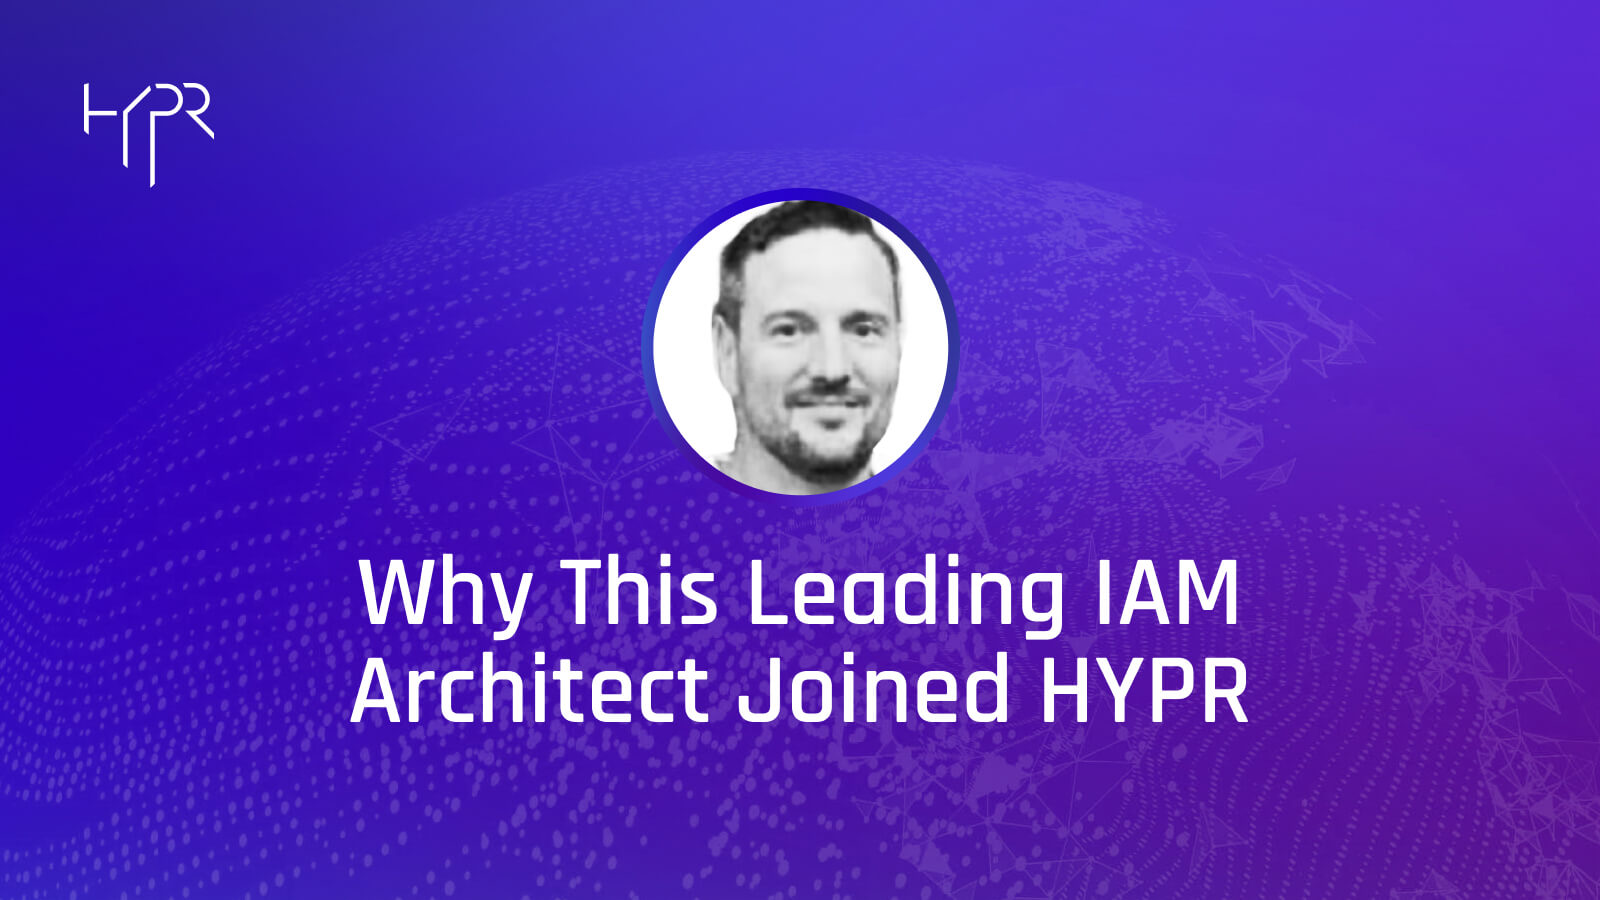 A Leading IAM Architect on Why He Joined HYPR